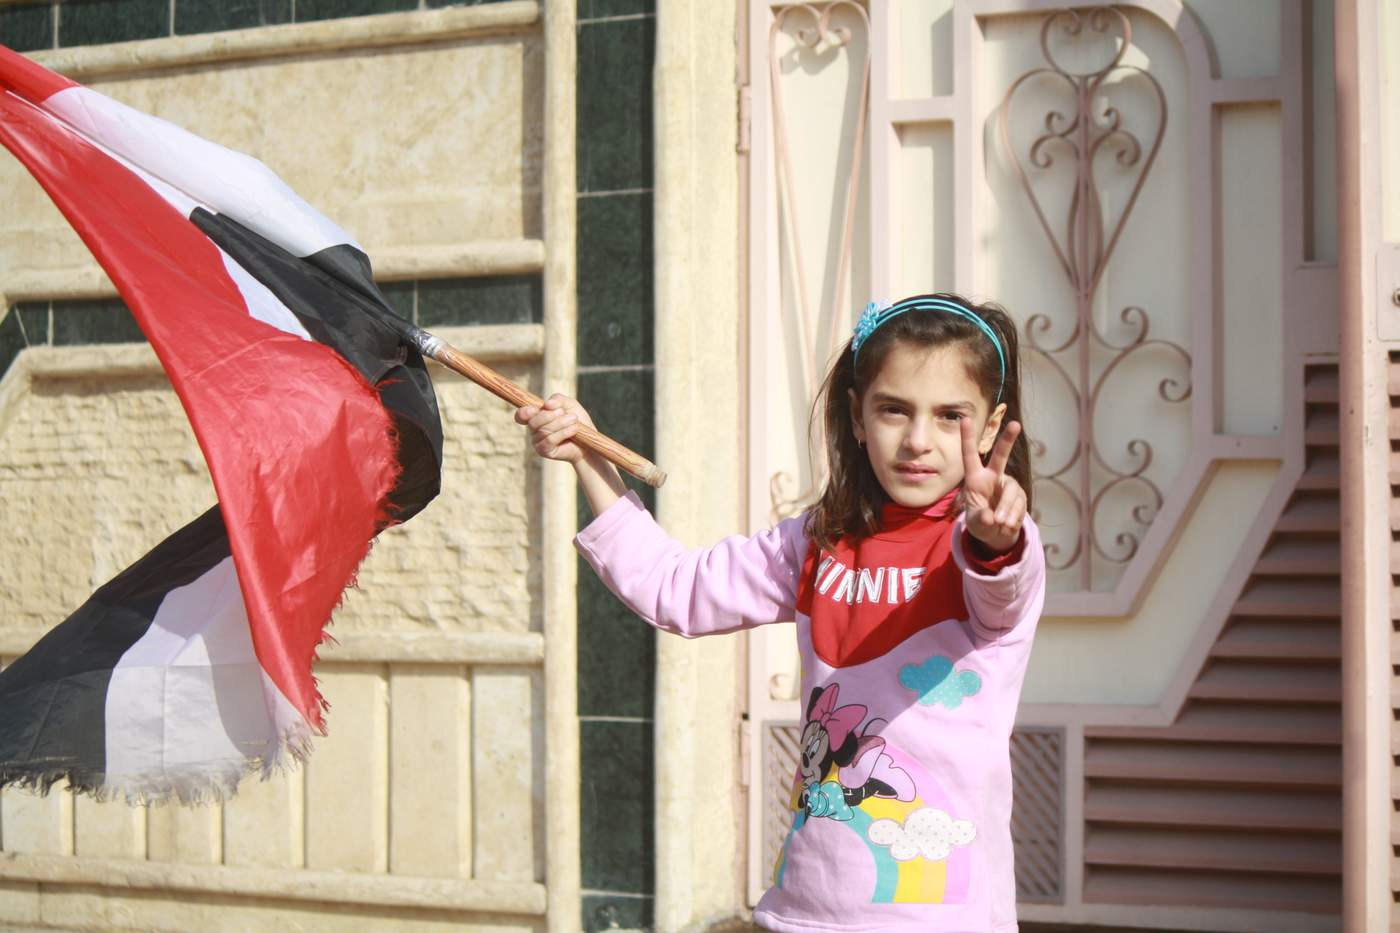 As Iraqi forces push into Mosul, families emerge from their homes often cheering forces on as they pass. (H. Murdock\/VOA) Jan. 13, 2017